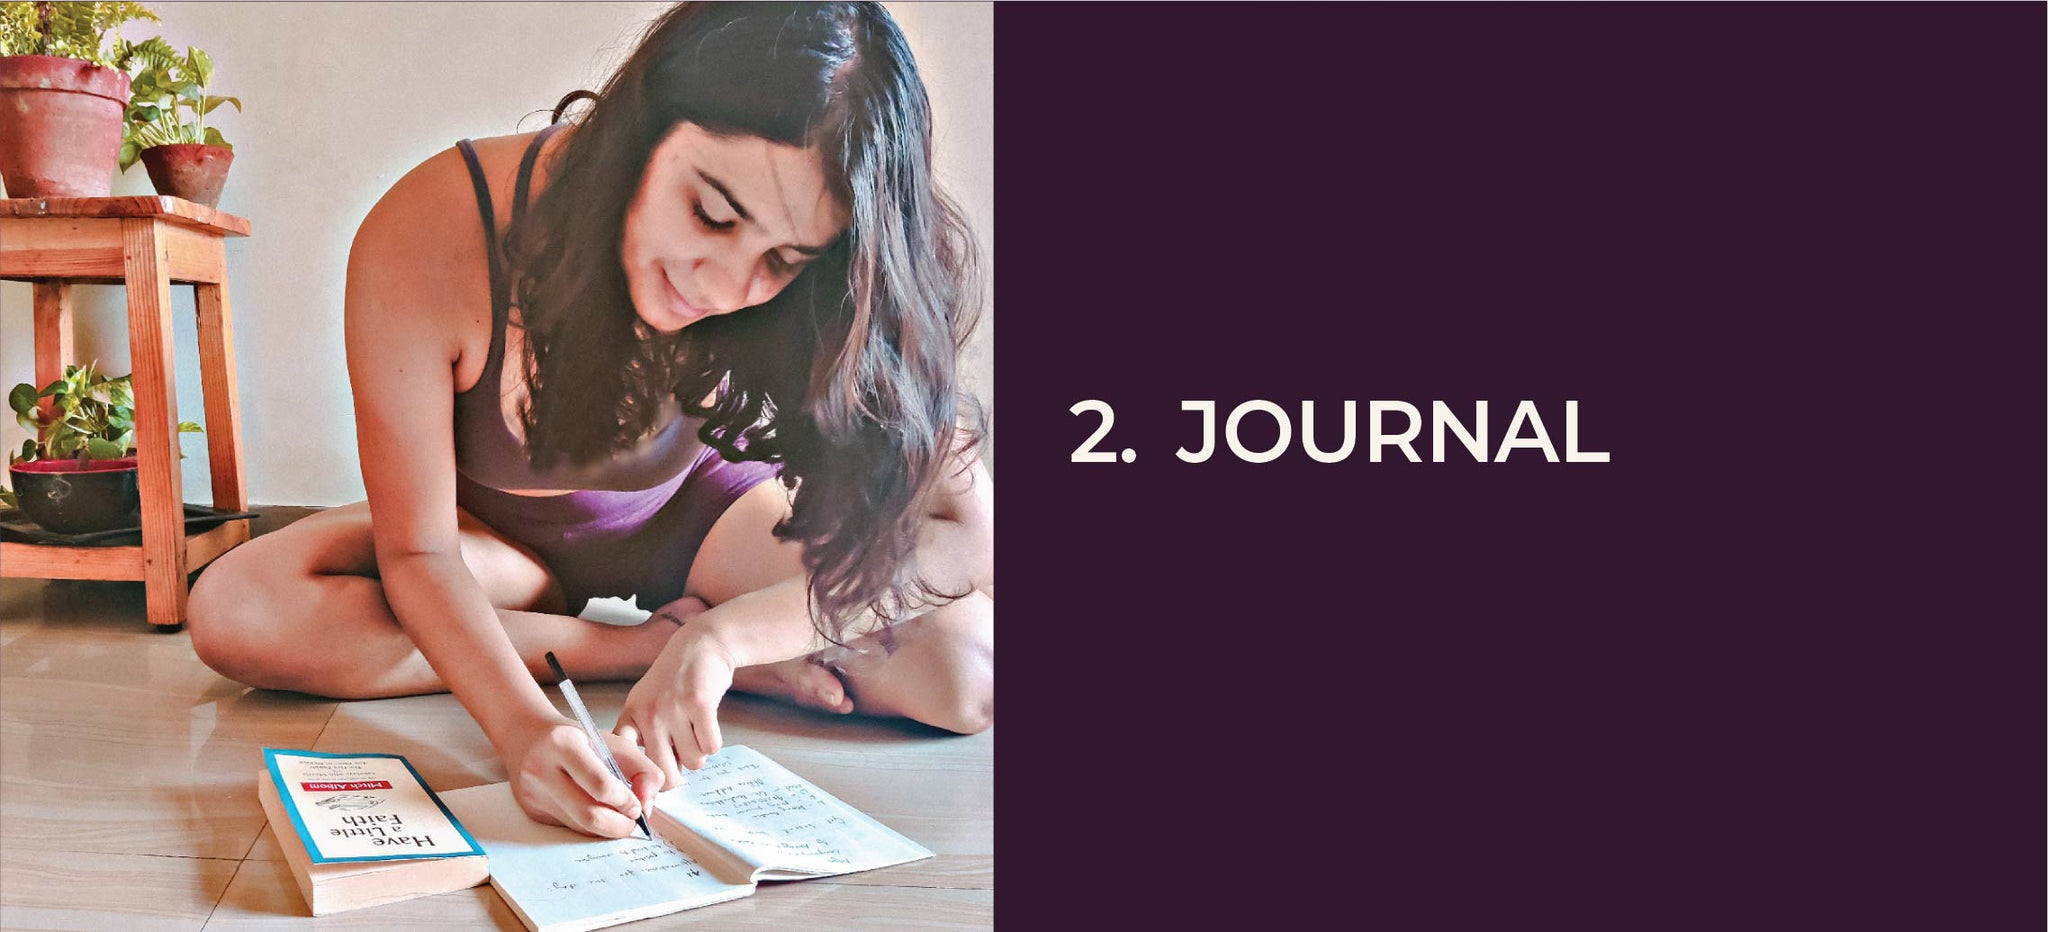 journaling helps when you have covid